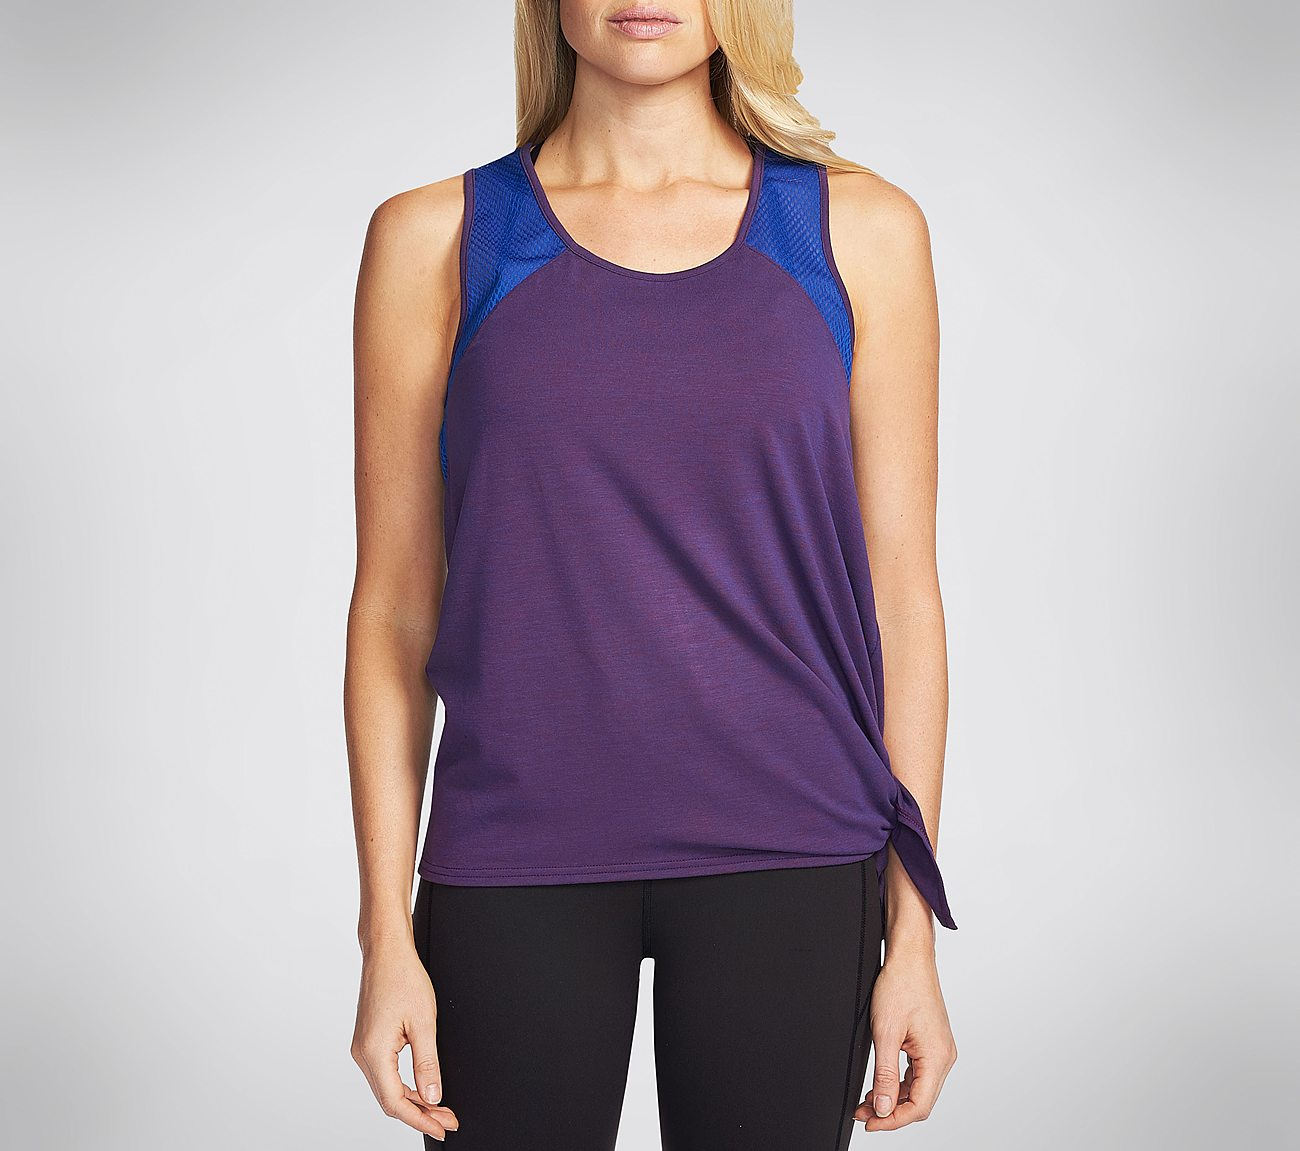 Castle Peak Side Tie Tank Top